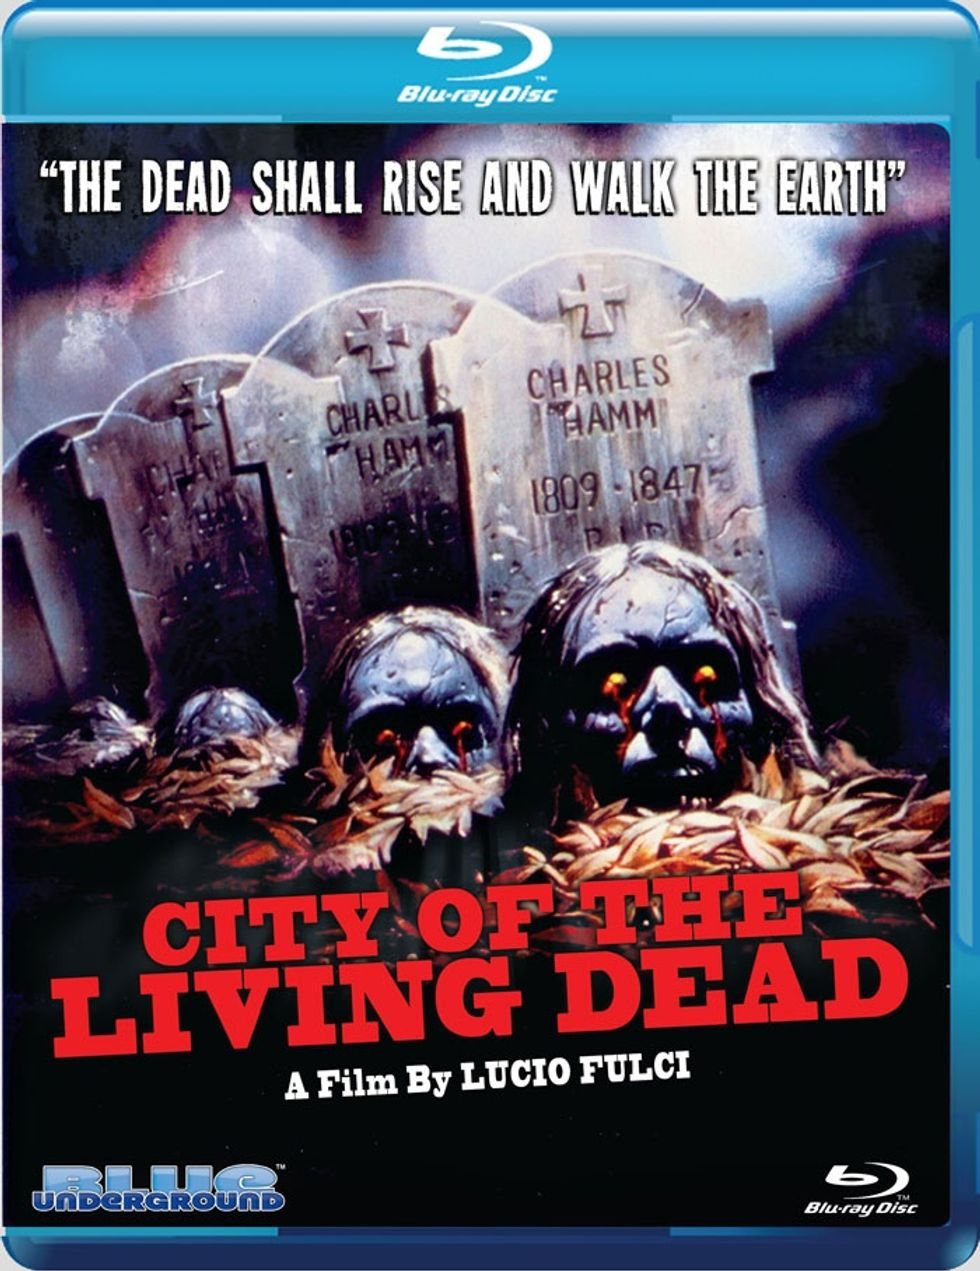 City Of The Living Dead, Now Out On Blu-ray, Will Make Your Eyes Bleed!